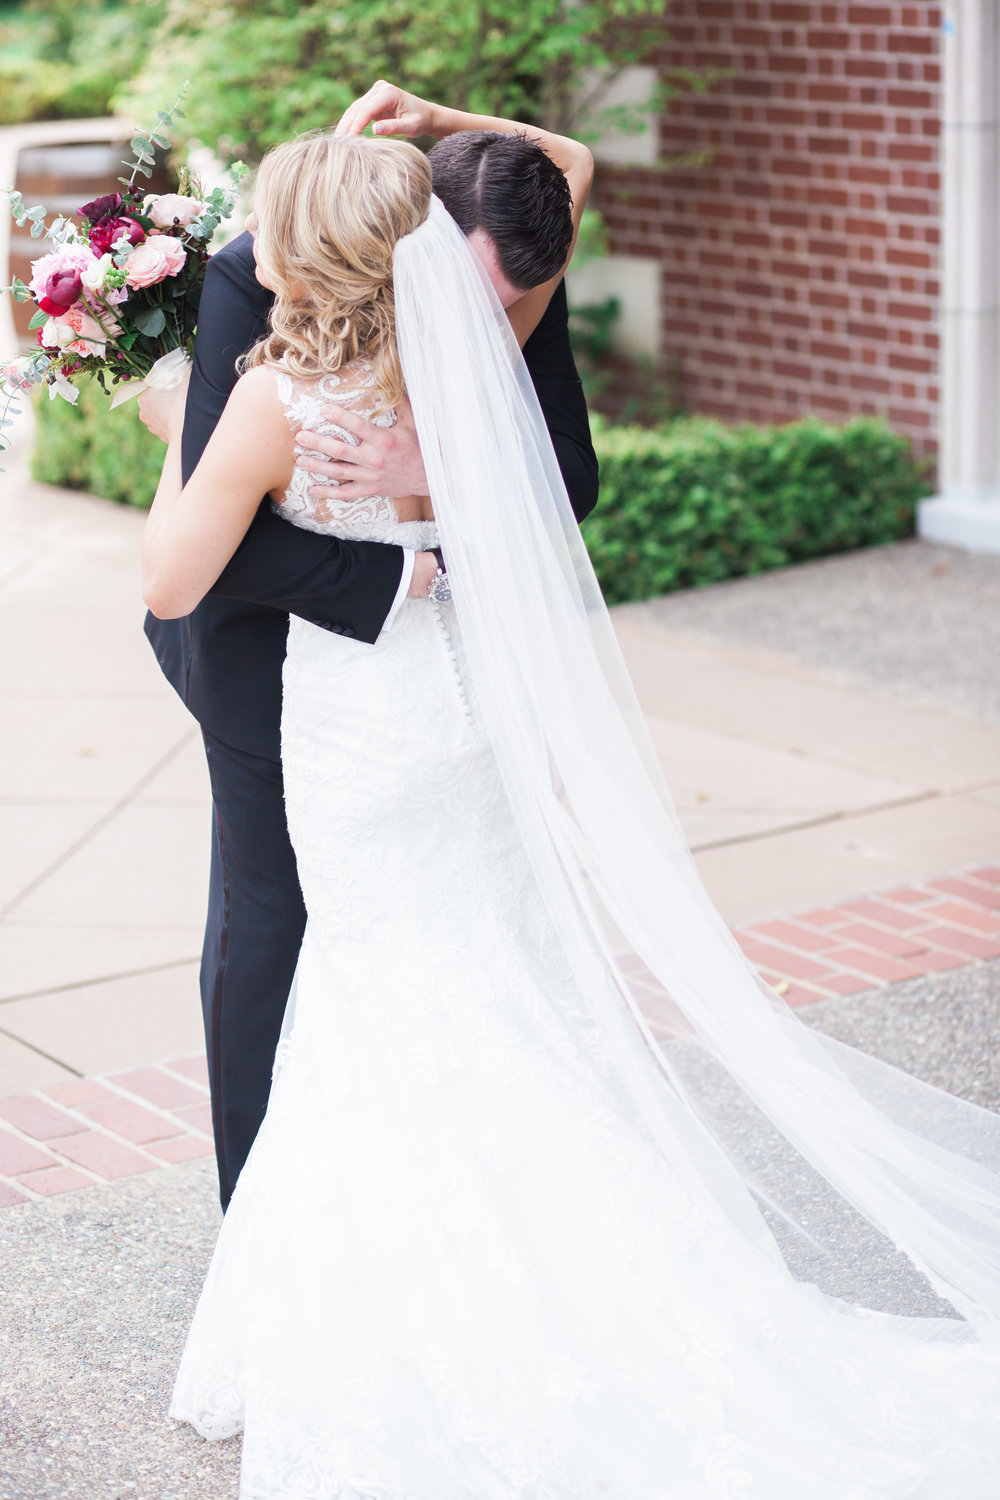 spring-inspired-wedding-at-kohl-mansion-burlingame-california-11.jpg